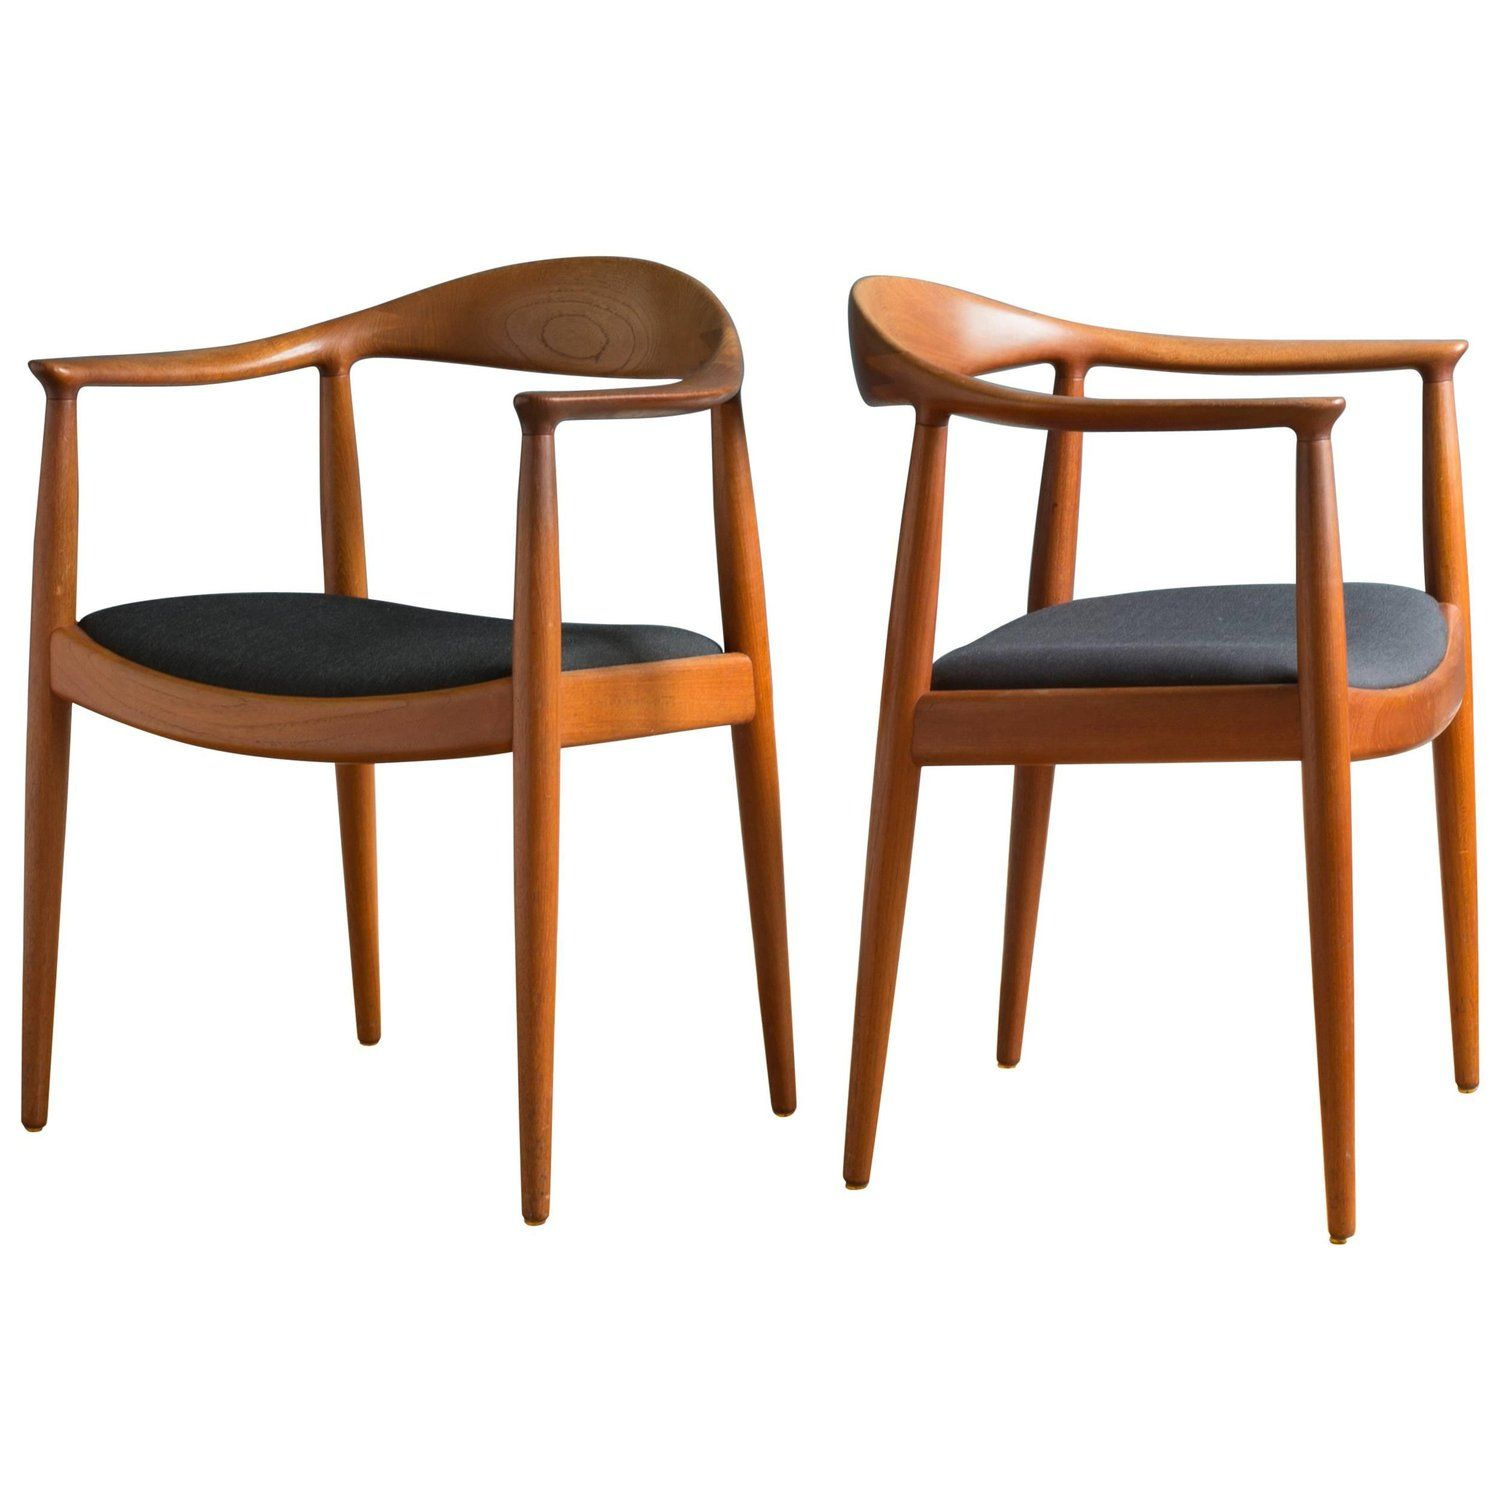 Pair Of Hans J Wegner The Chair In Teak For Johannes Hansen Chair Vintage Chairs Wegner Chair